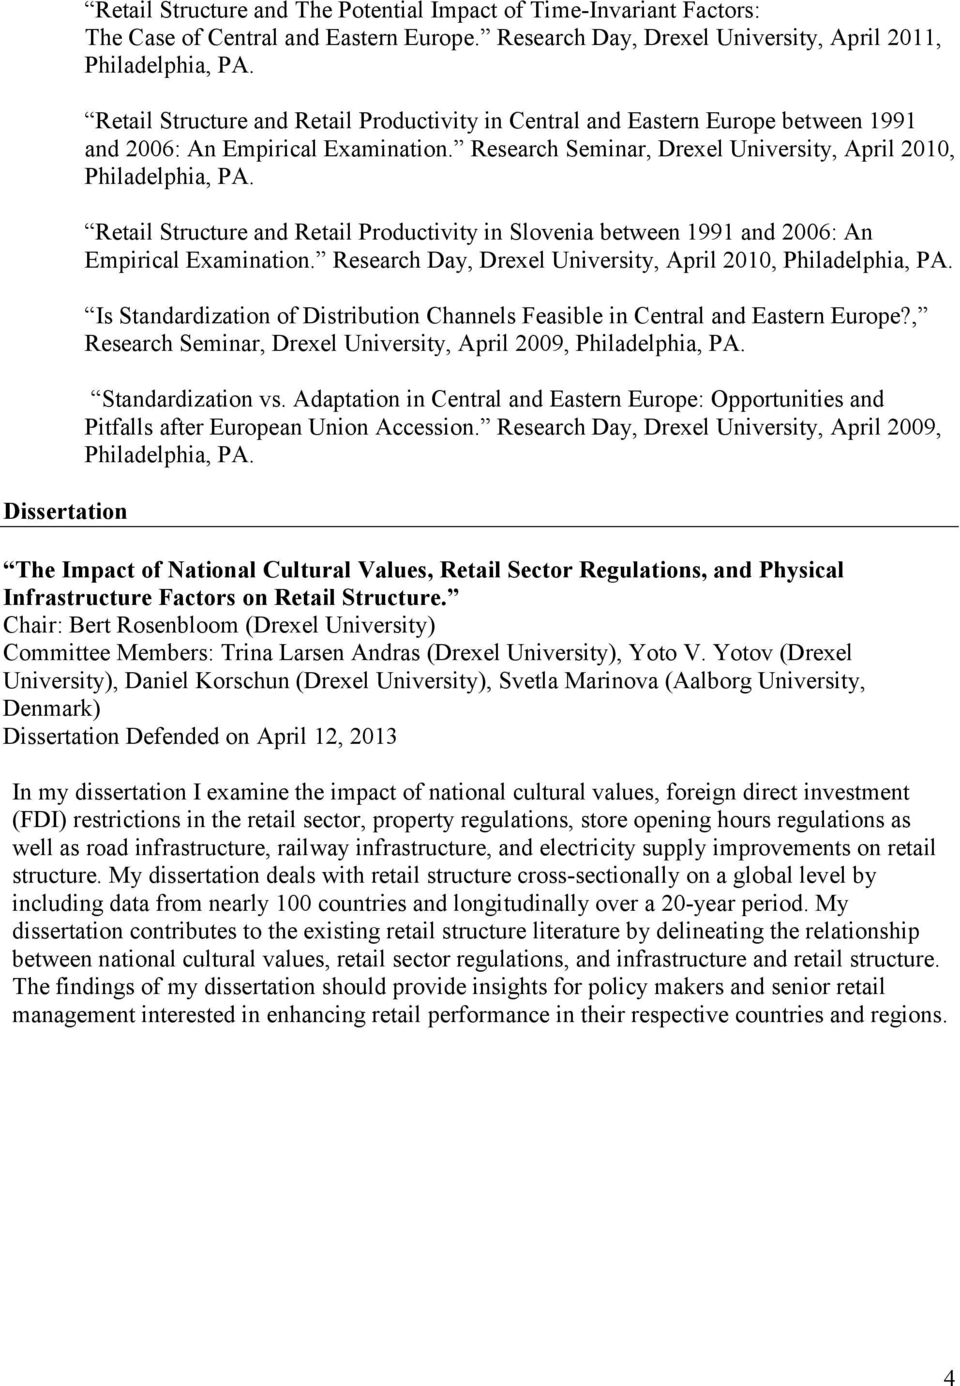 Retail Structure and Retail Productivity in Slovenia between 1991 and 2006: An Empirical Examination. Research Day, Drexel University, April 2010, Philadelphia, PA.